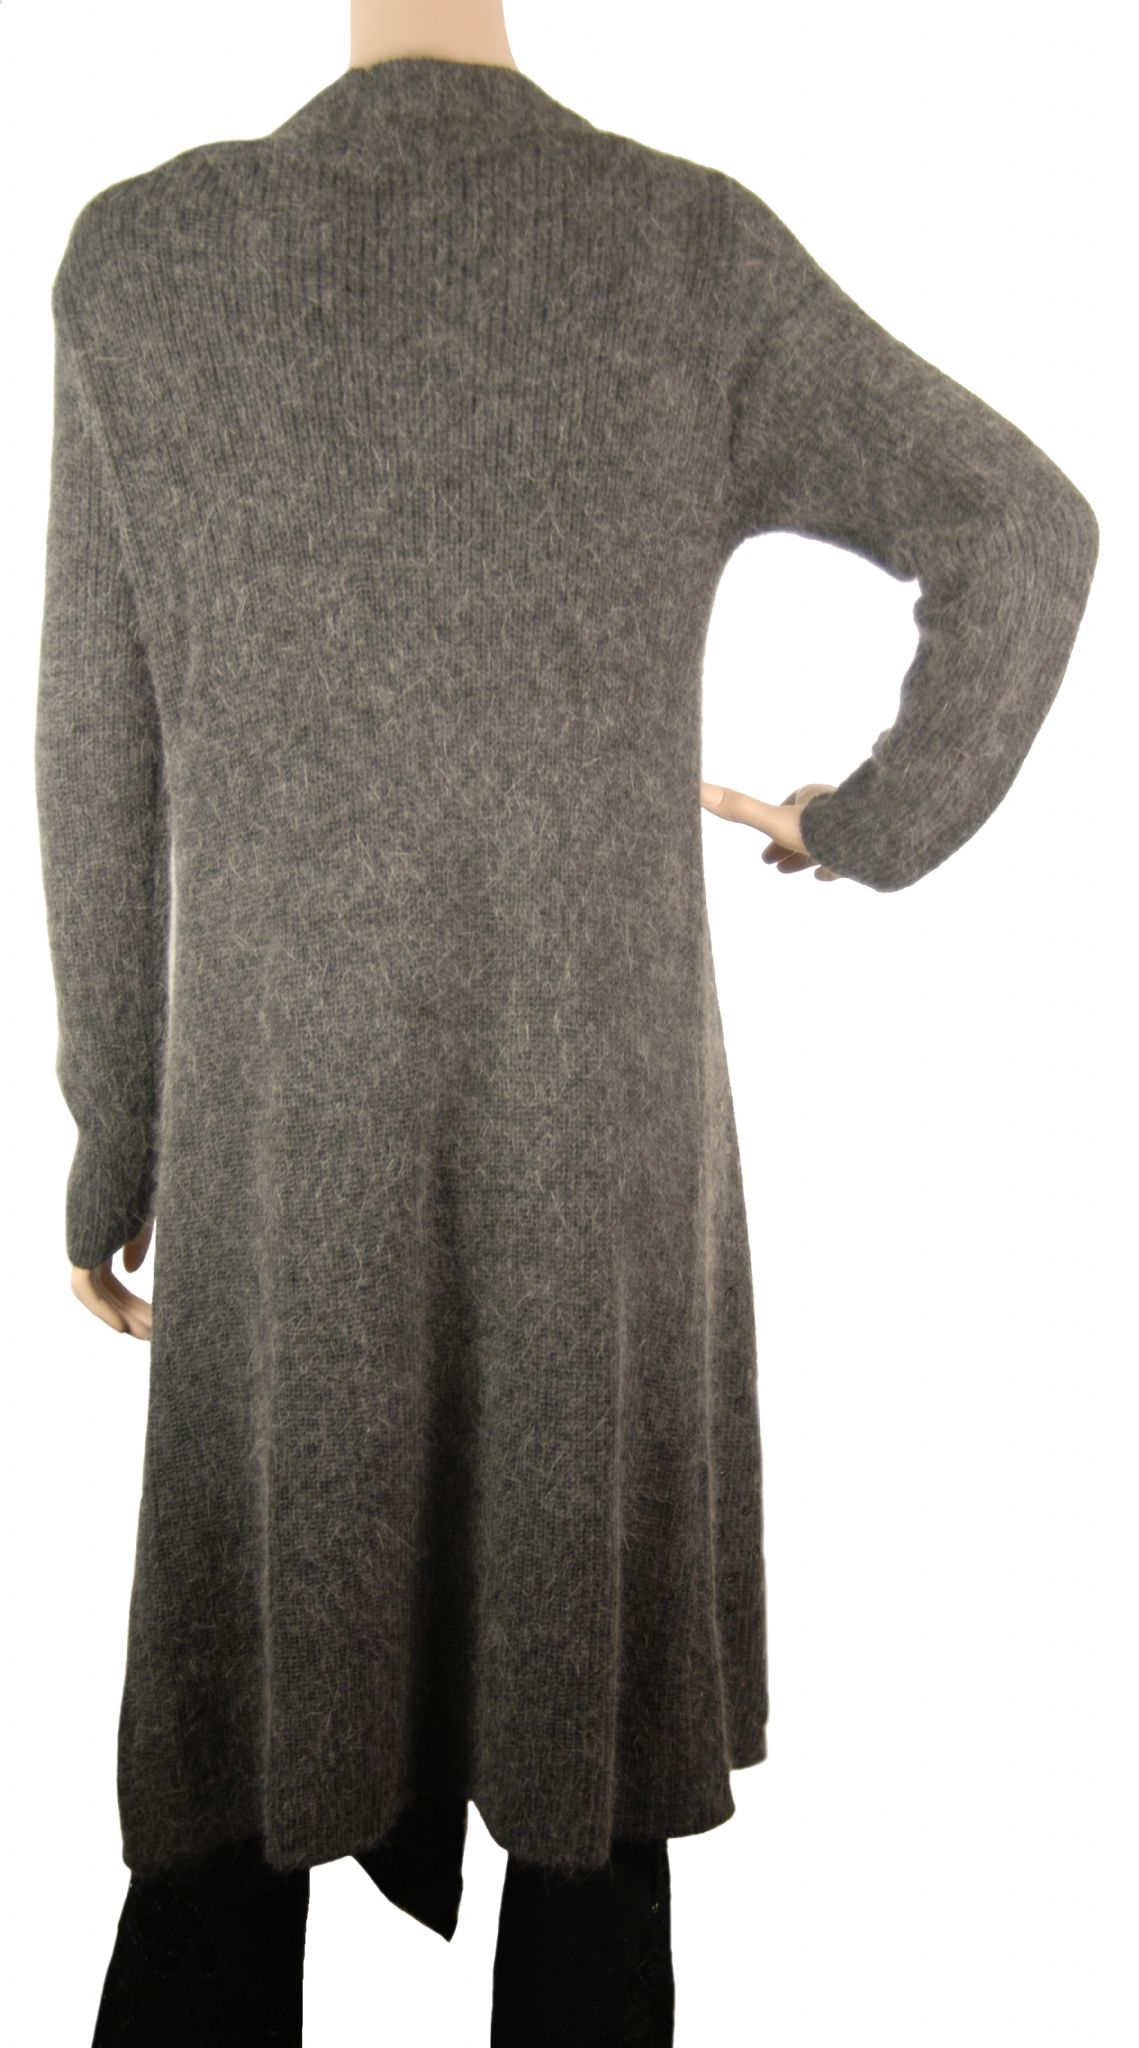 ConMiGo CC120 Glamorous Long Dark Grey Angora Sequin Cardigan